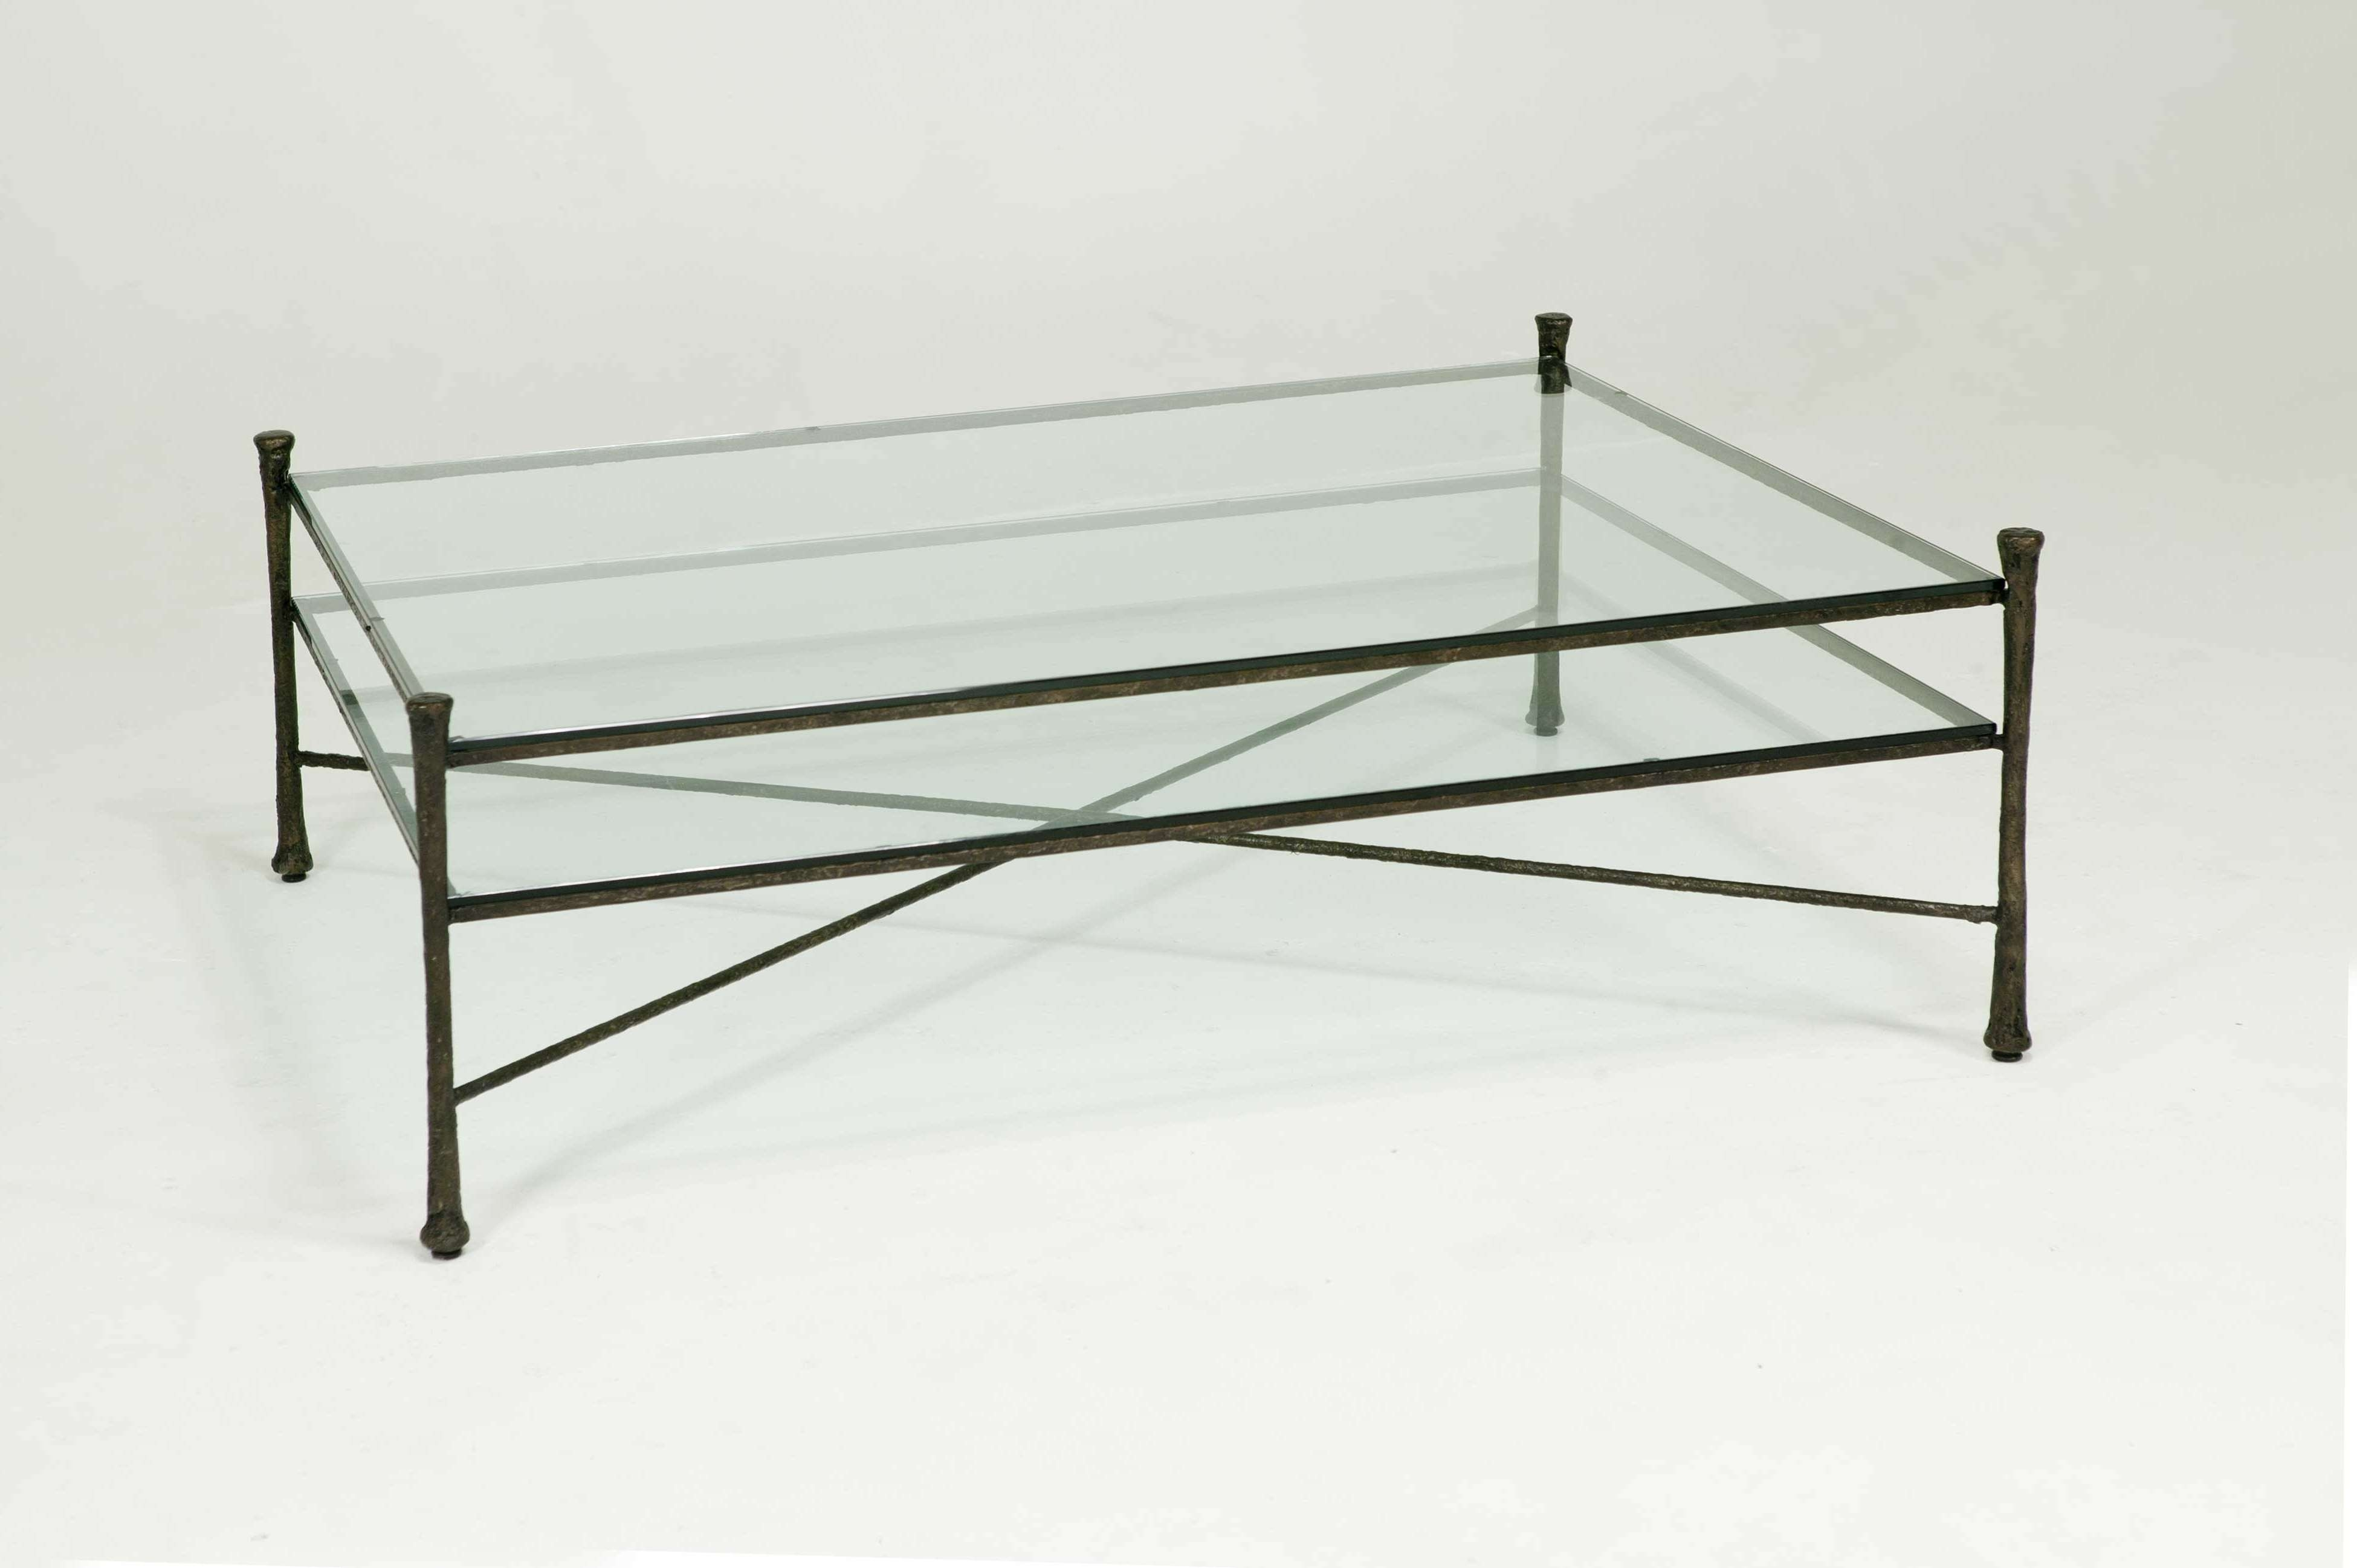 Coffee Tables Ideas: Top Metal Glass Coffee Table Wrought Iron For Well Known Metal And Glass Coffee Tables (View 3 of 20)